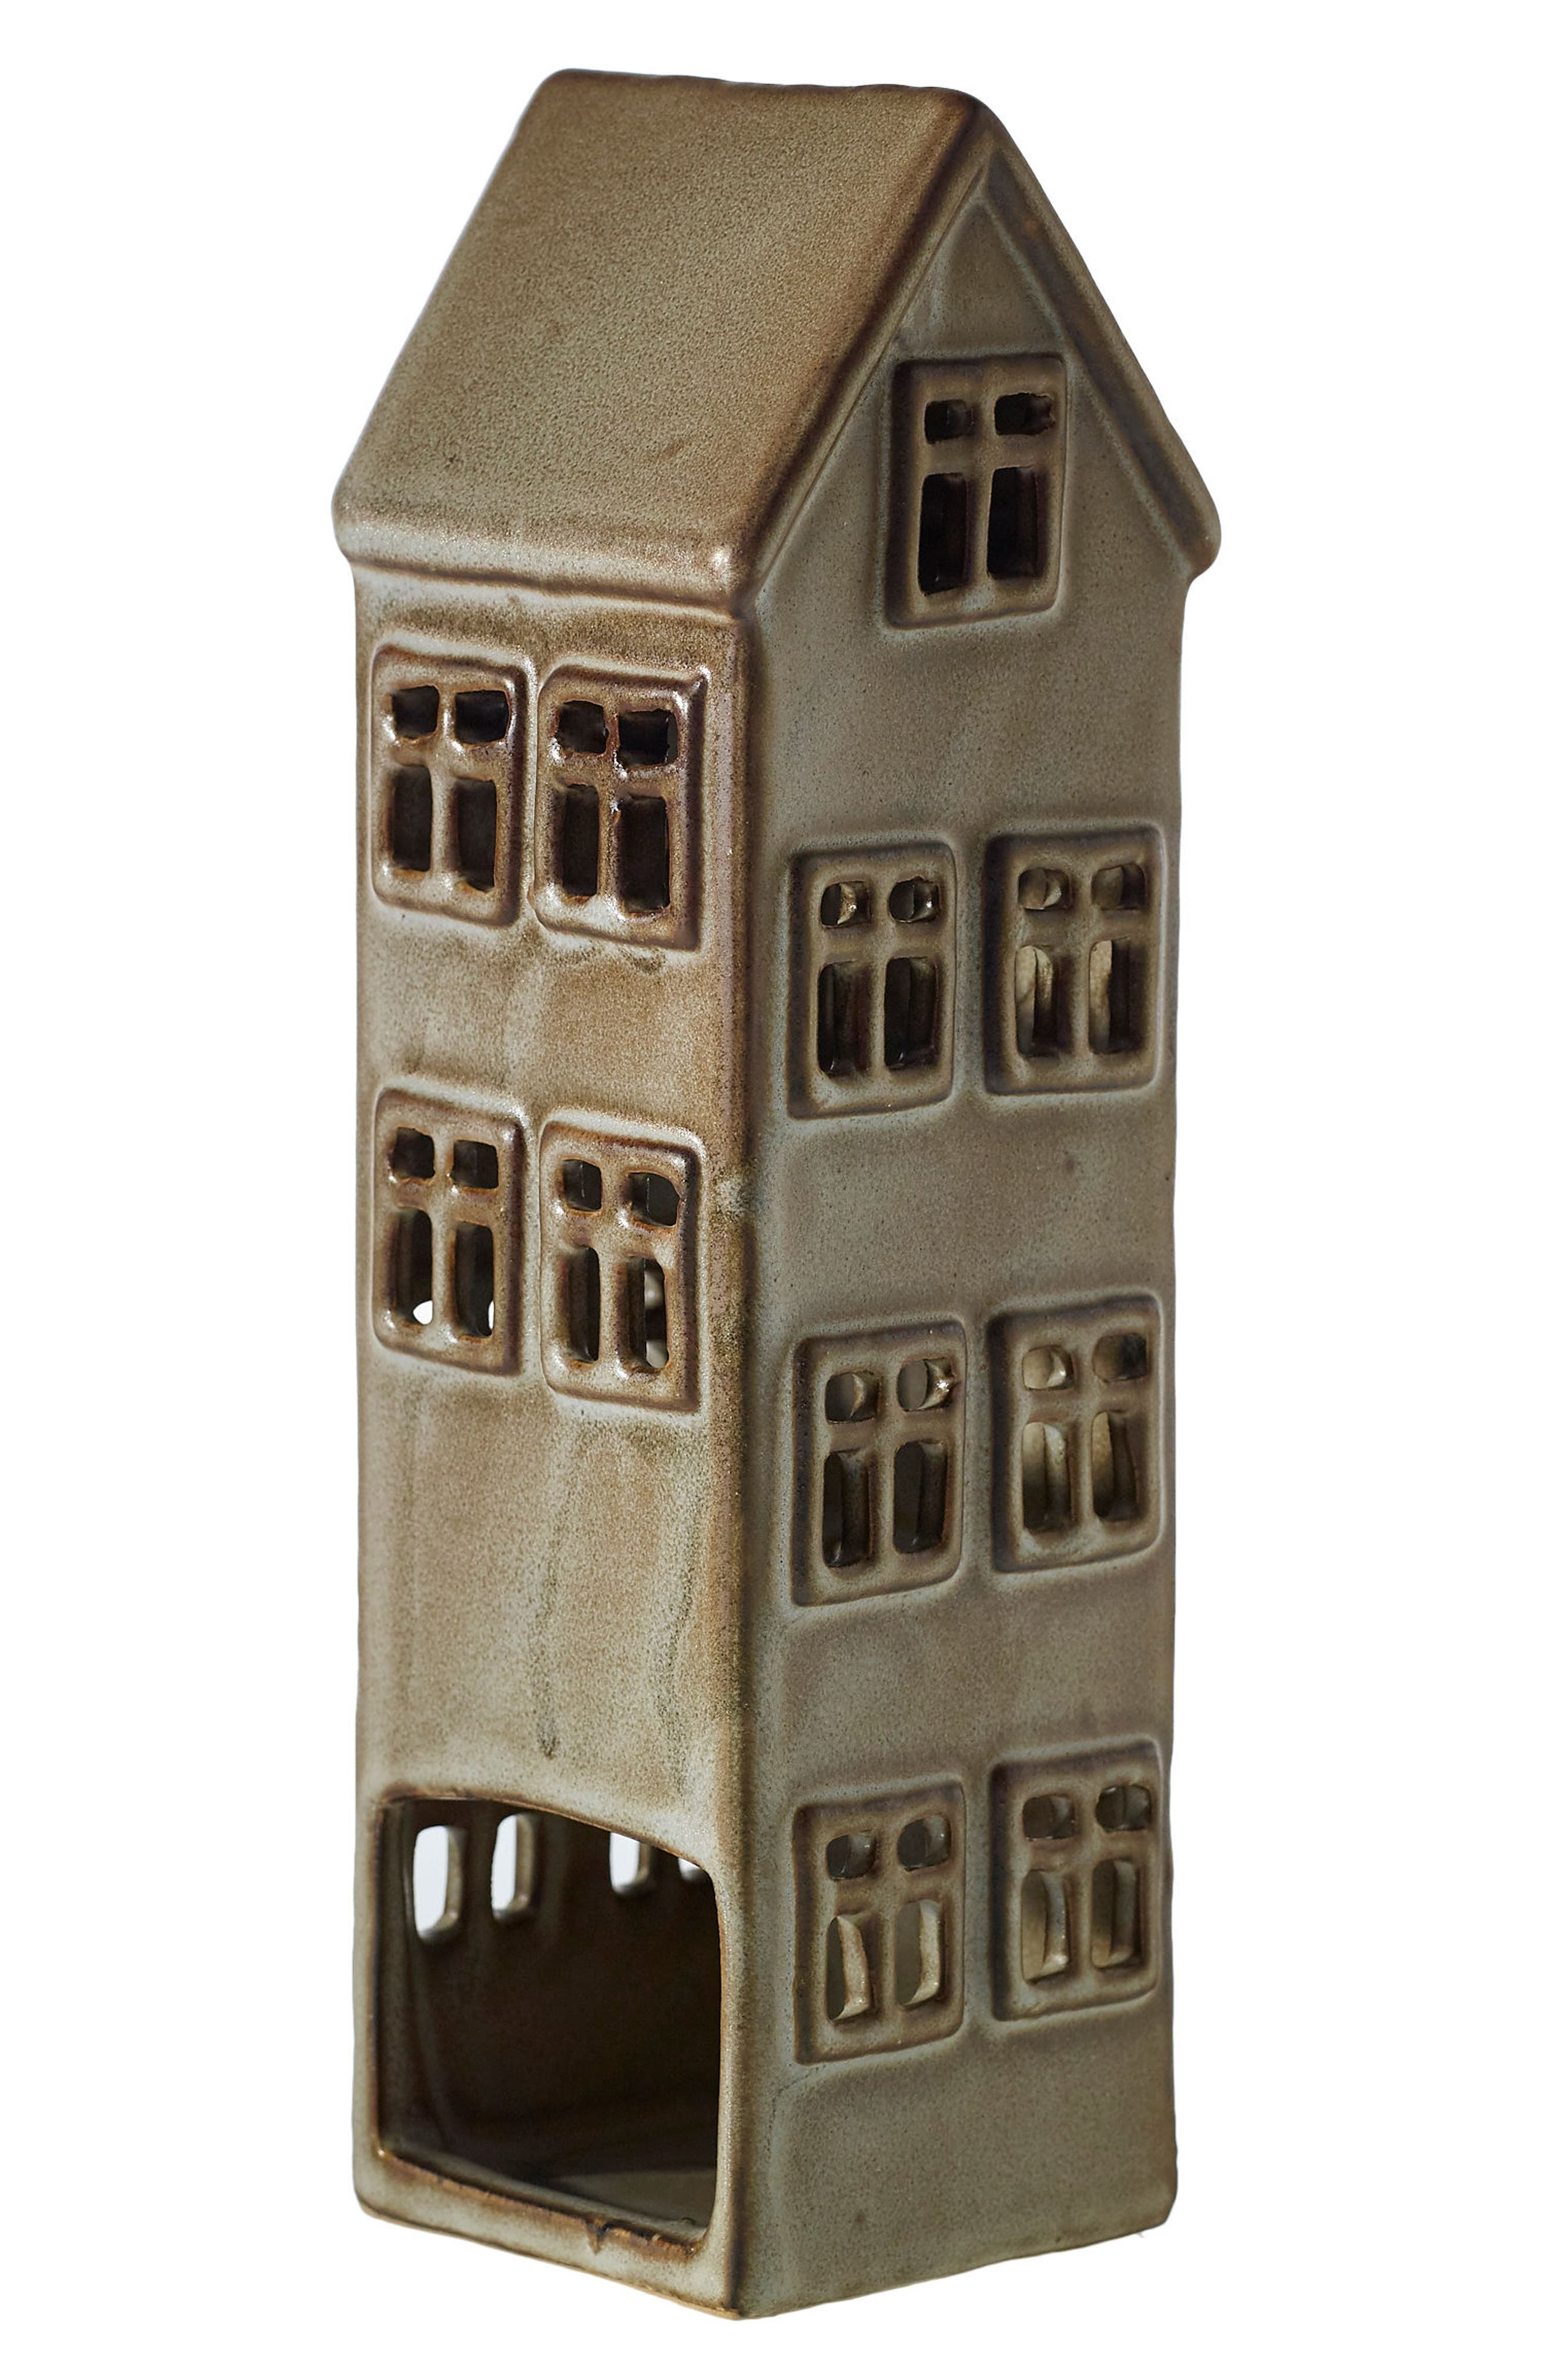 Alternate Image 1 Selected - Accent Decor Townshend House Ceramic Candle Holder